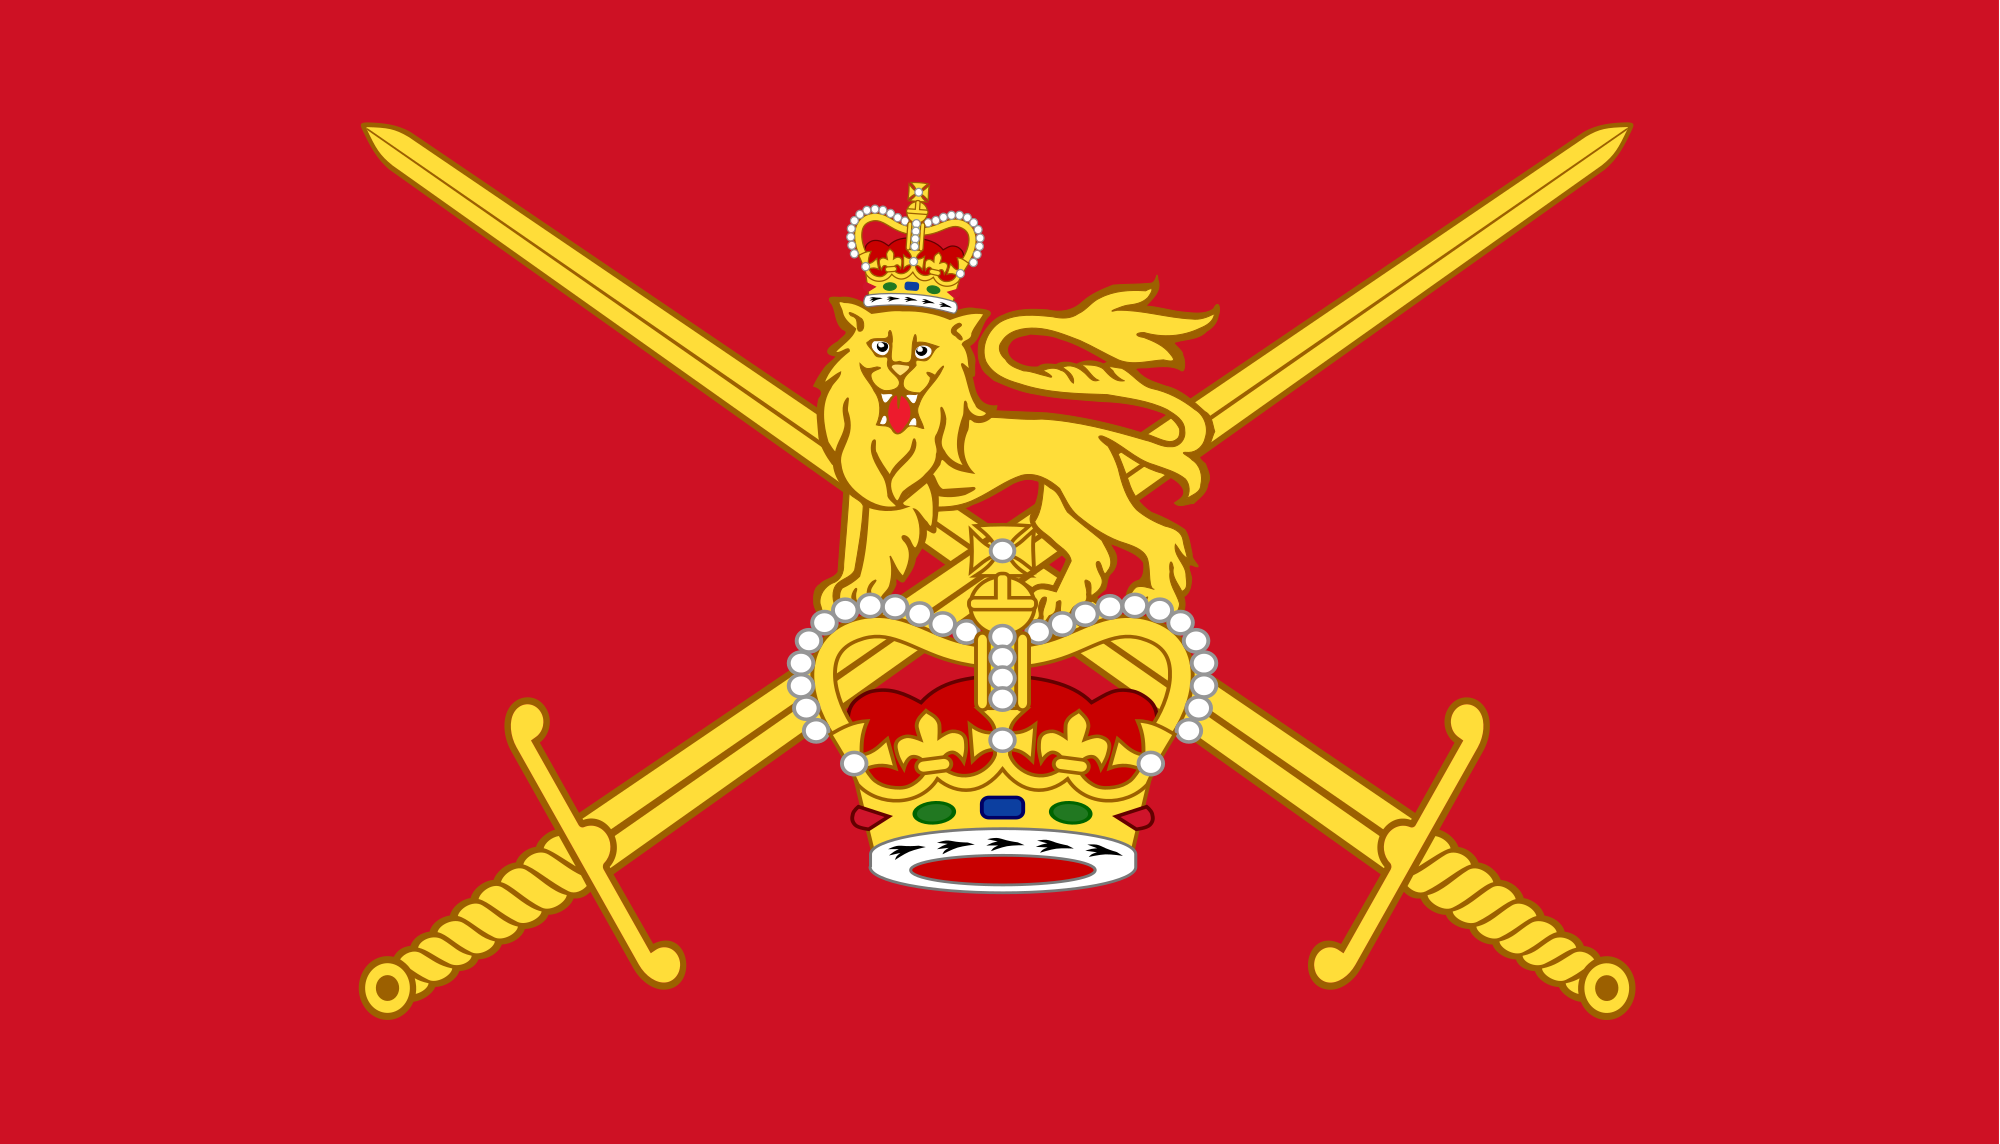 British Army PNG - 160927